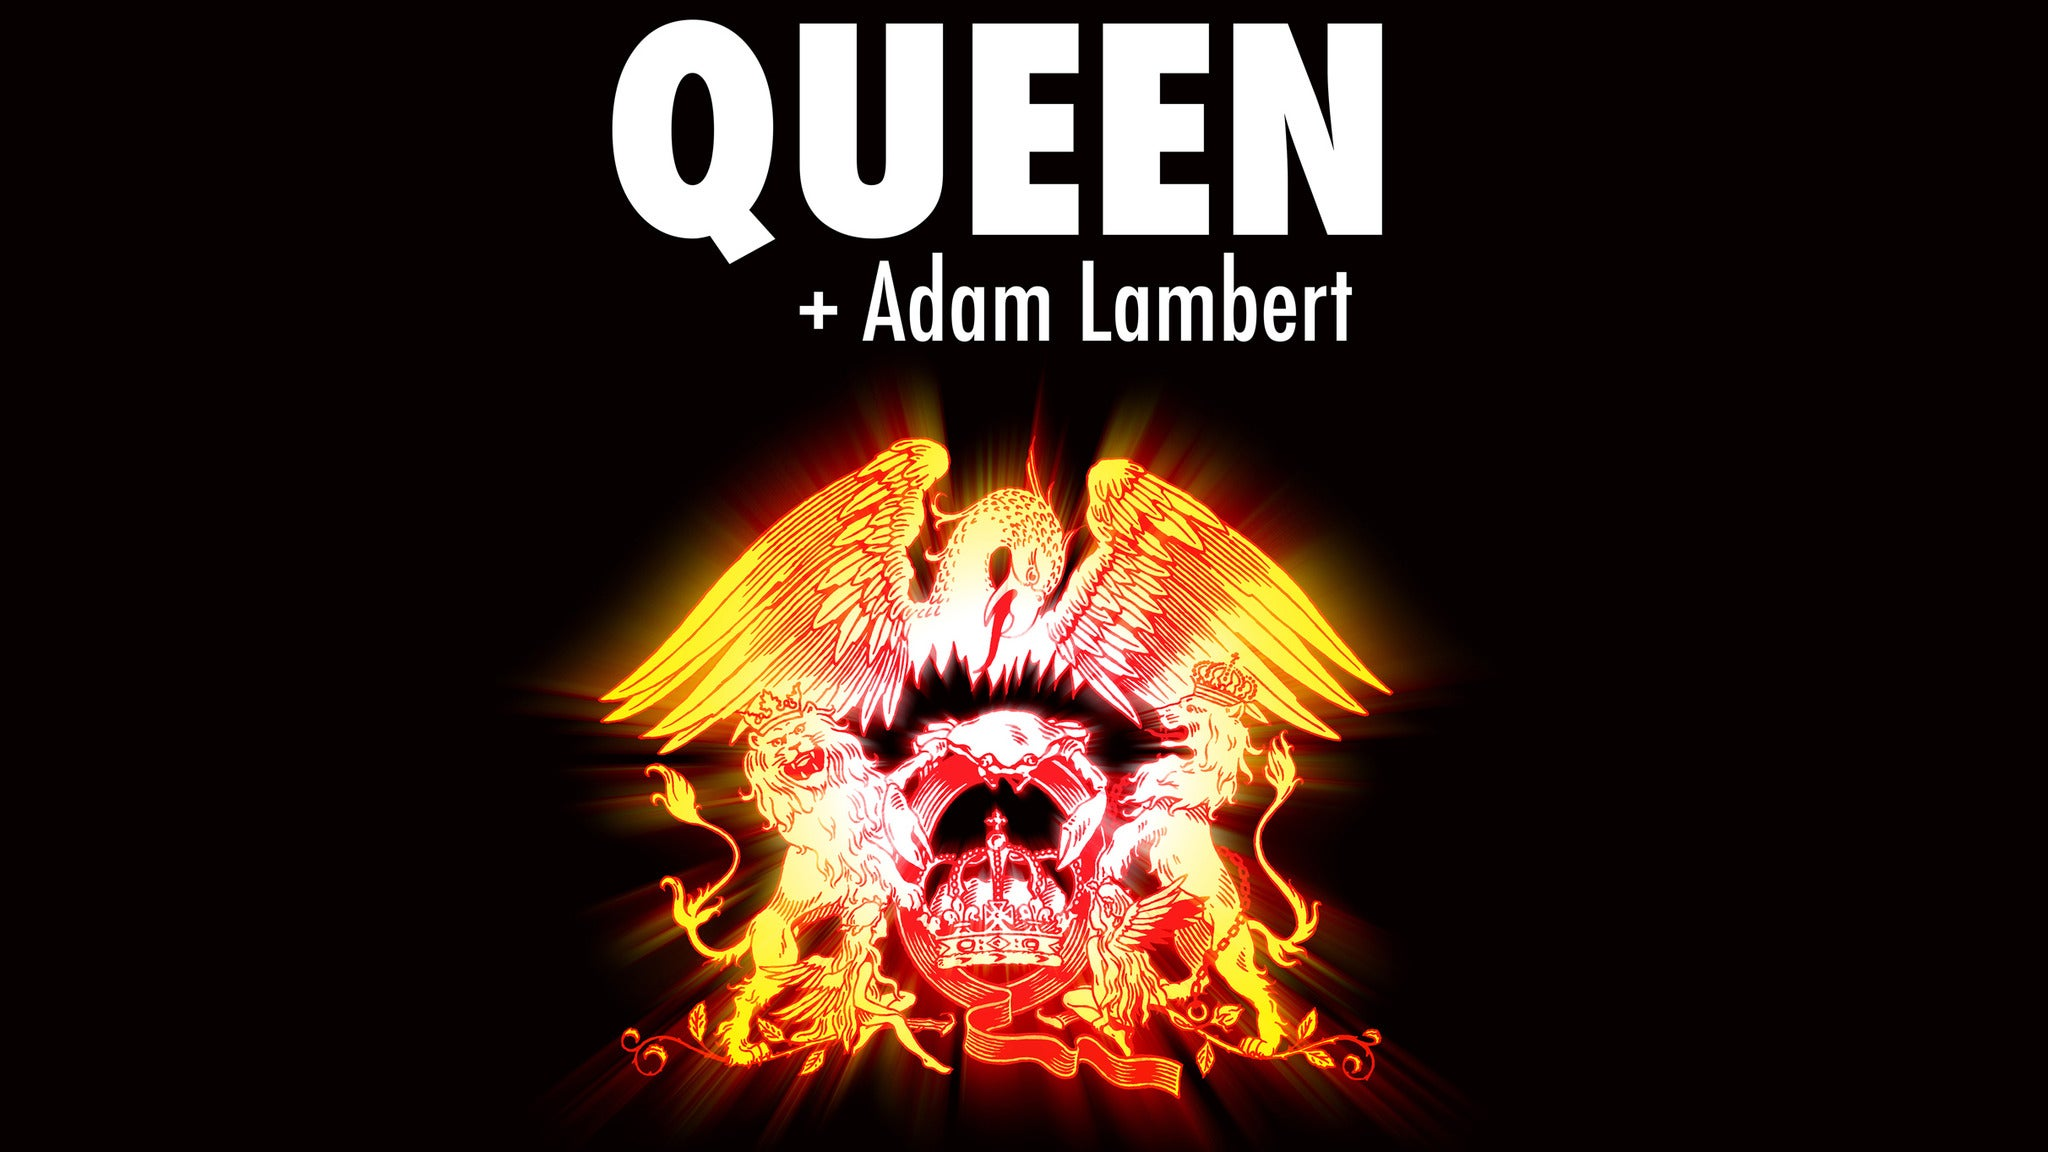 Queen + Adam Lambert - Upgrade VIP Packages